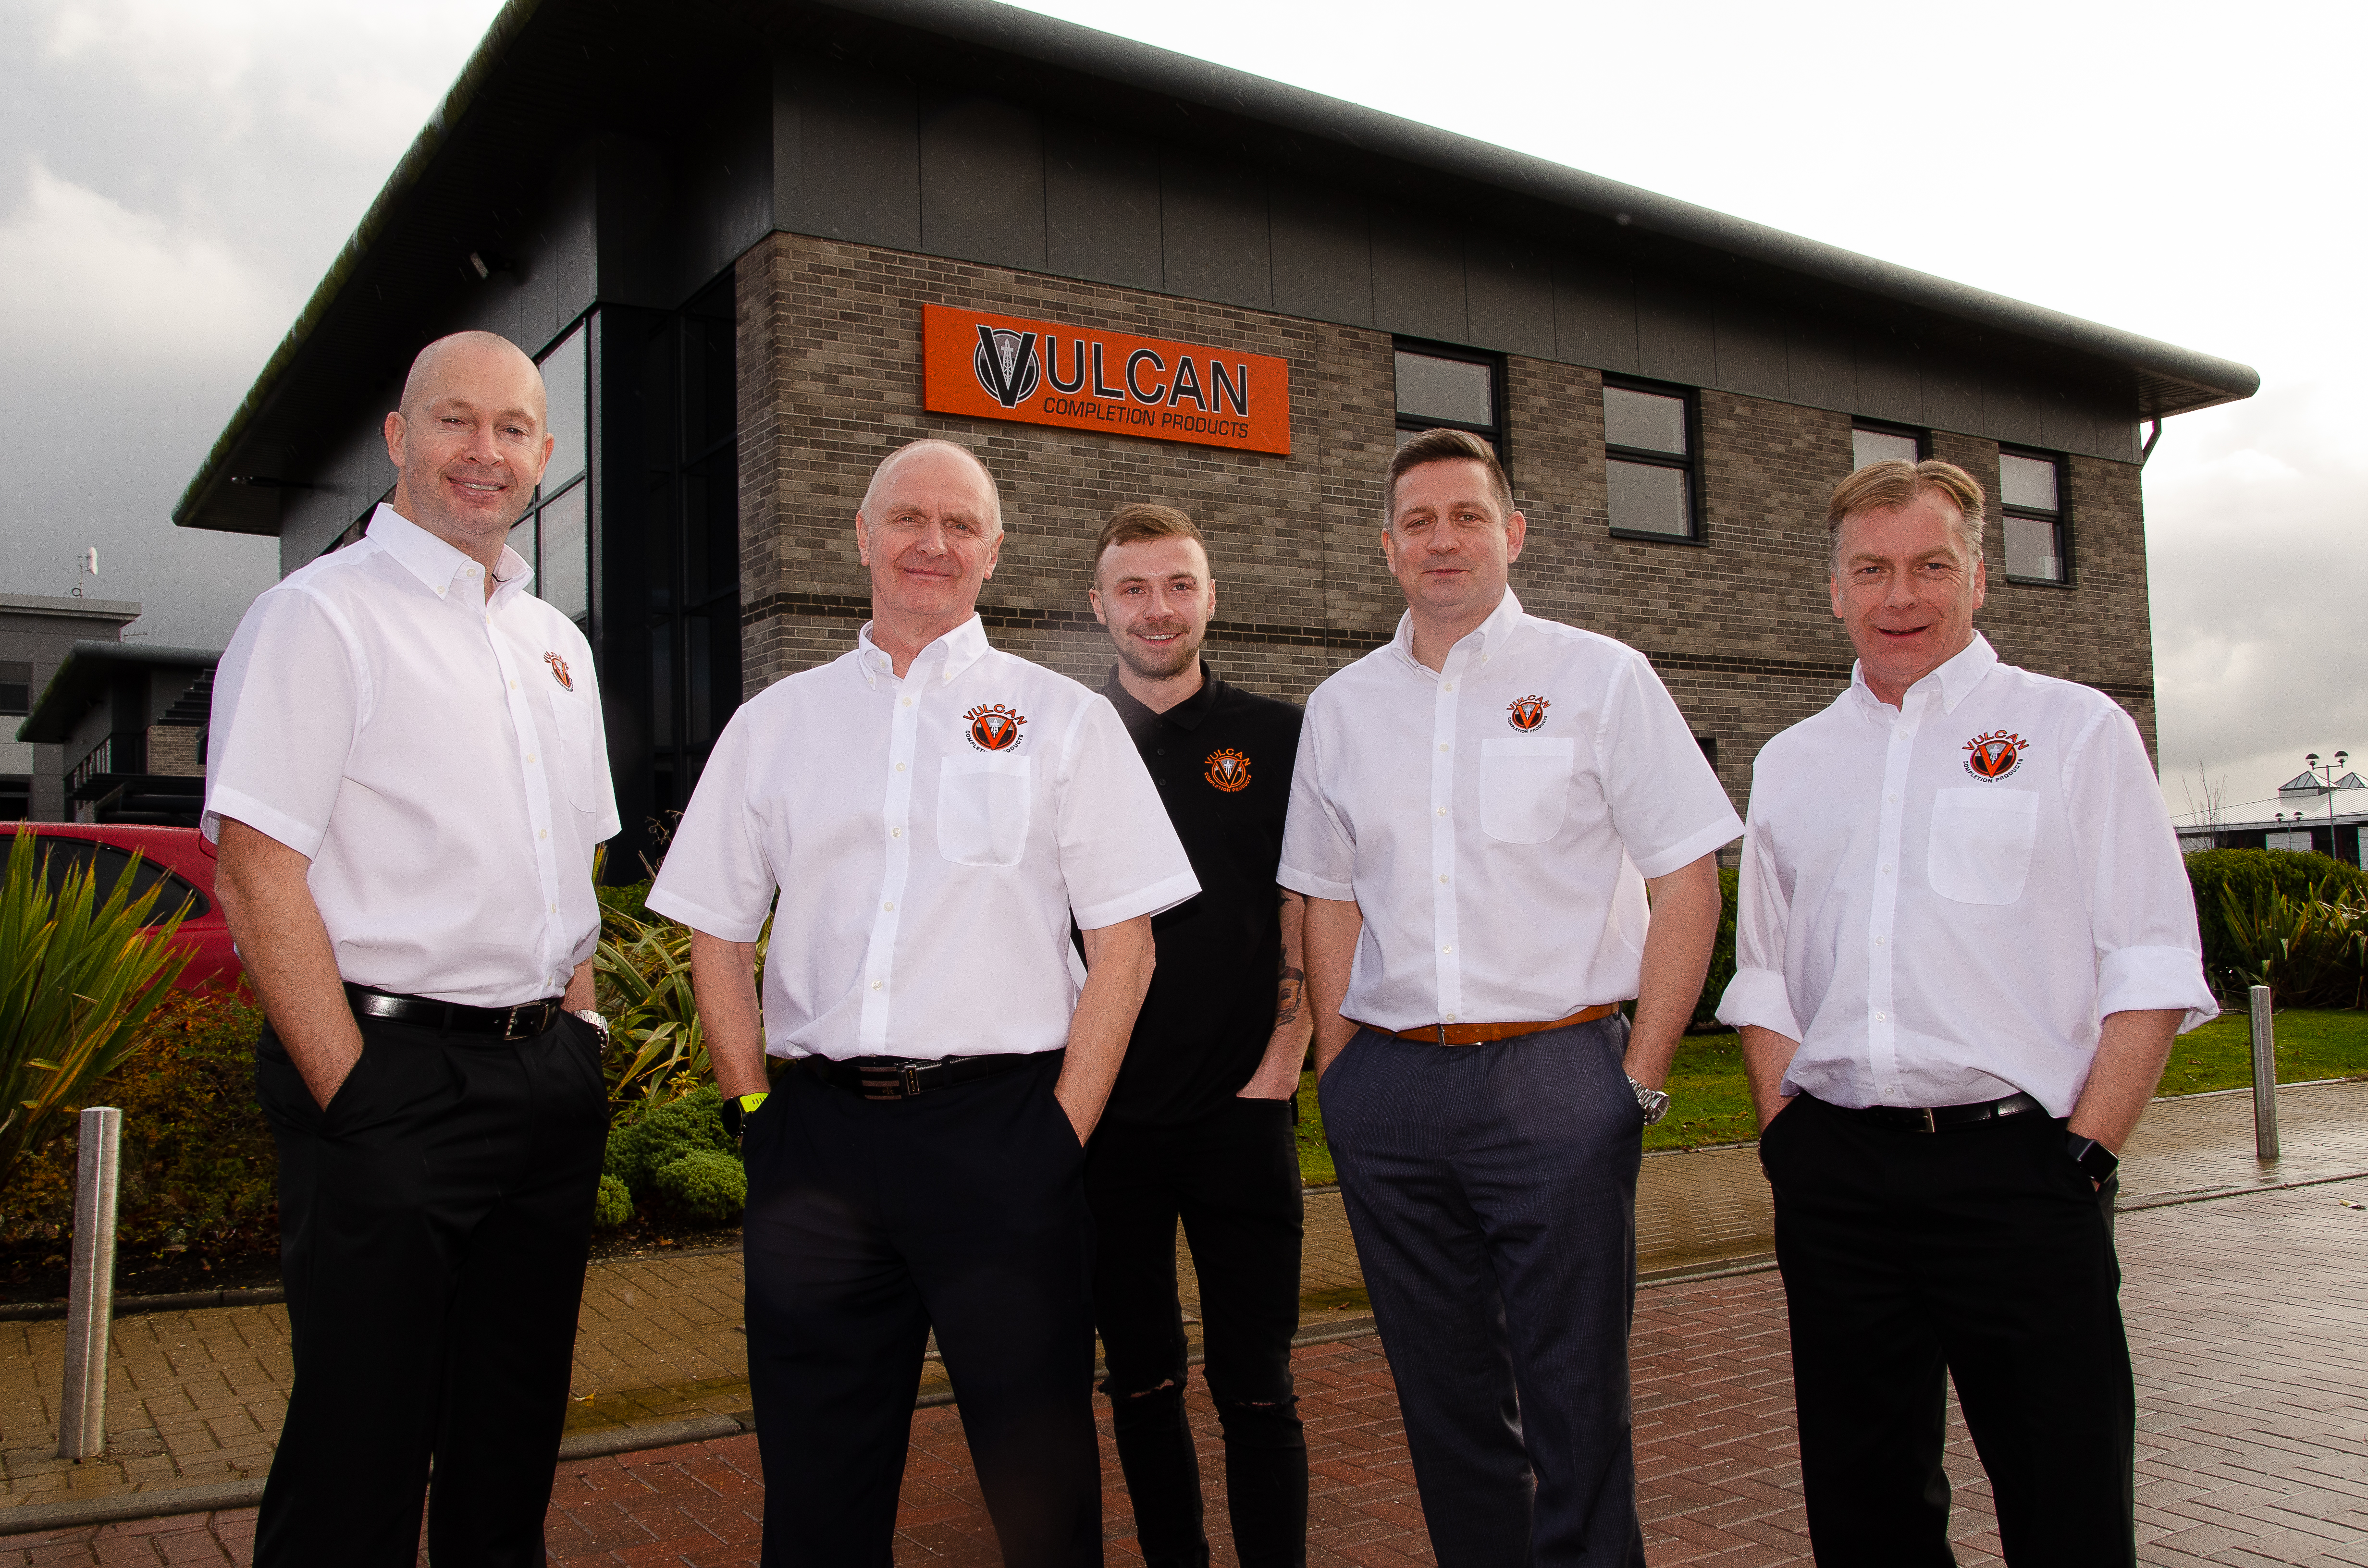 L-R, Martin Pirie, Ian Kirk, Nathan Kirk, Mark Dundee and Andy Kirk.